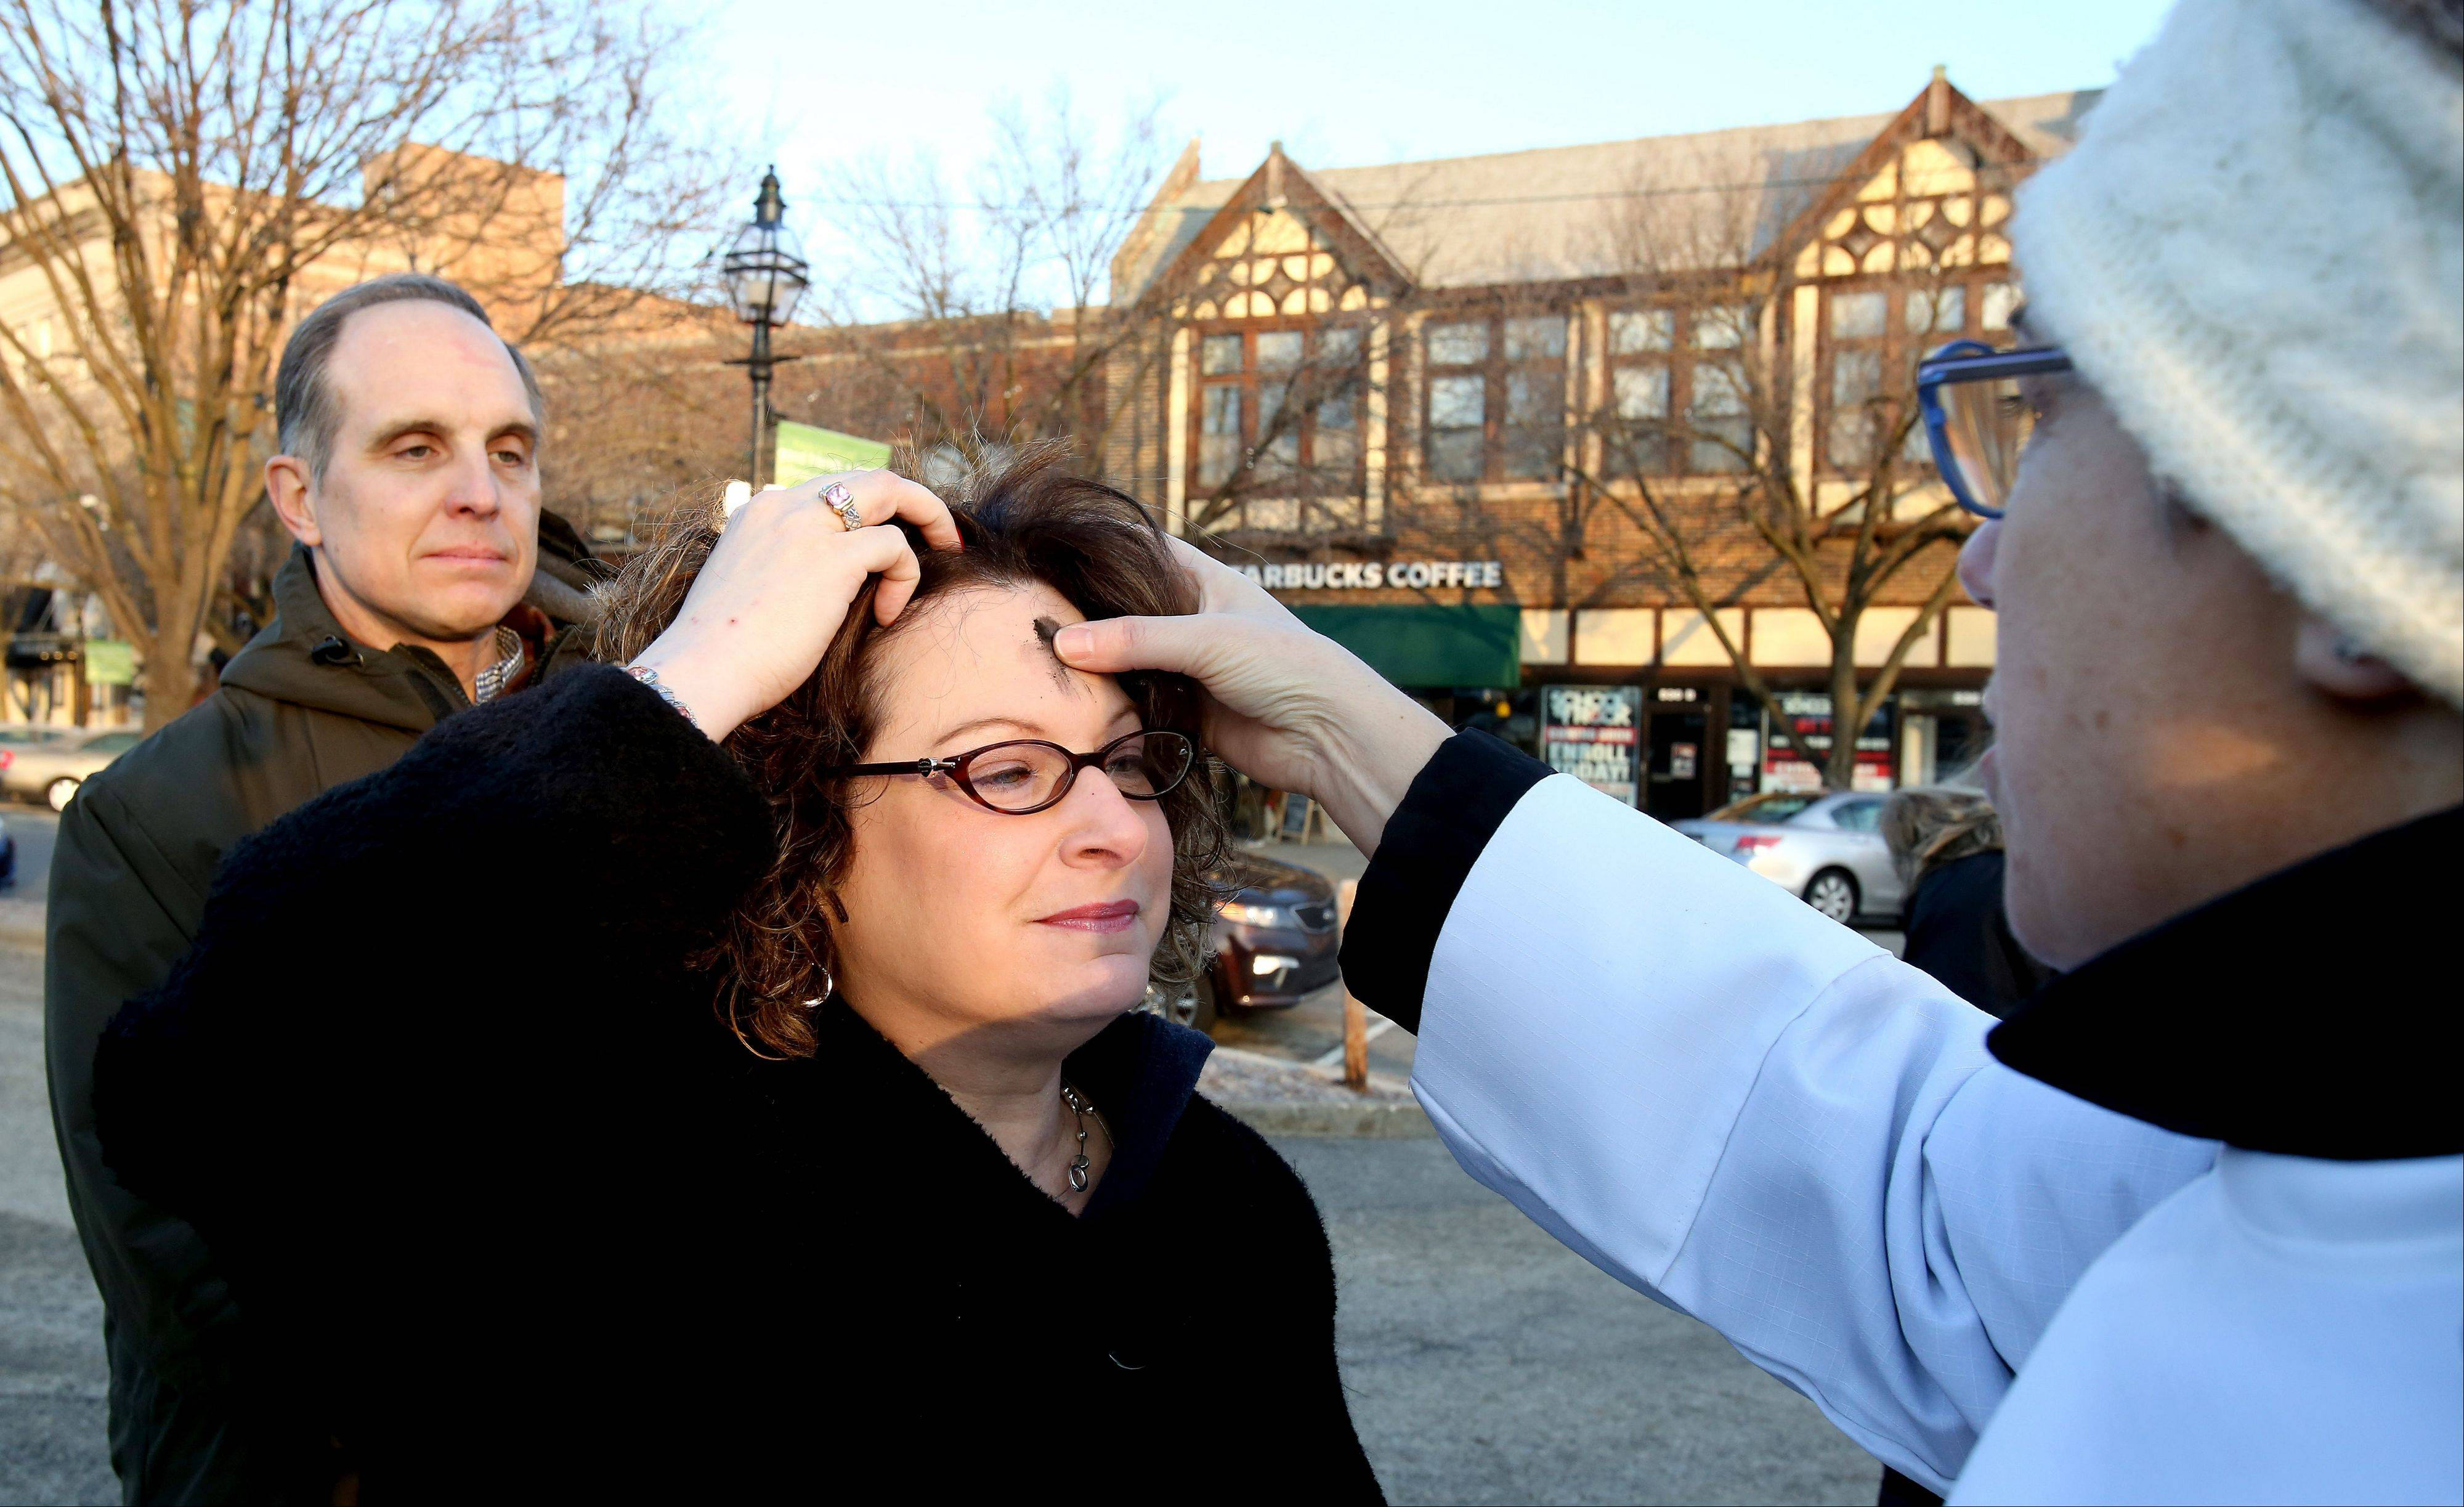 Suburban Christians mark Ash Wednesday in churches and train stations